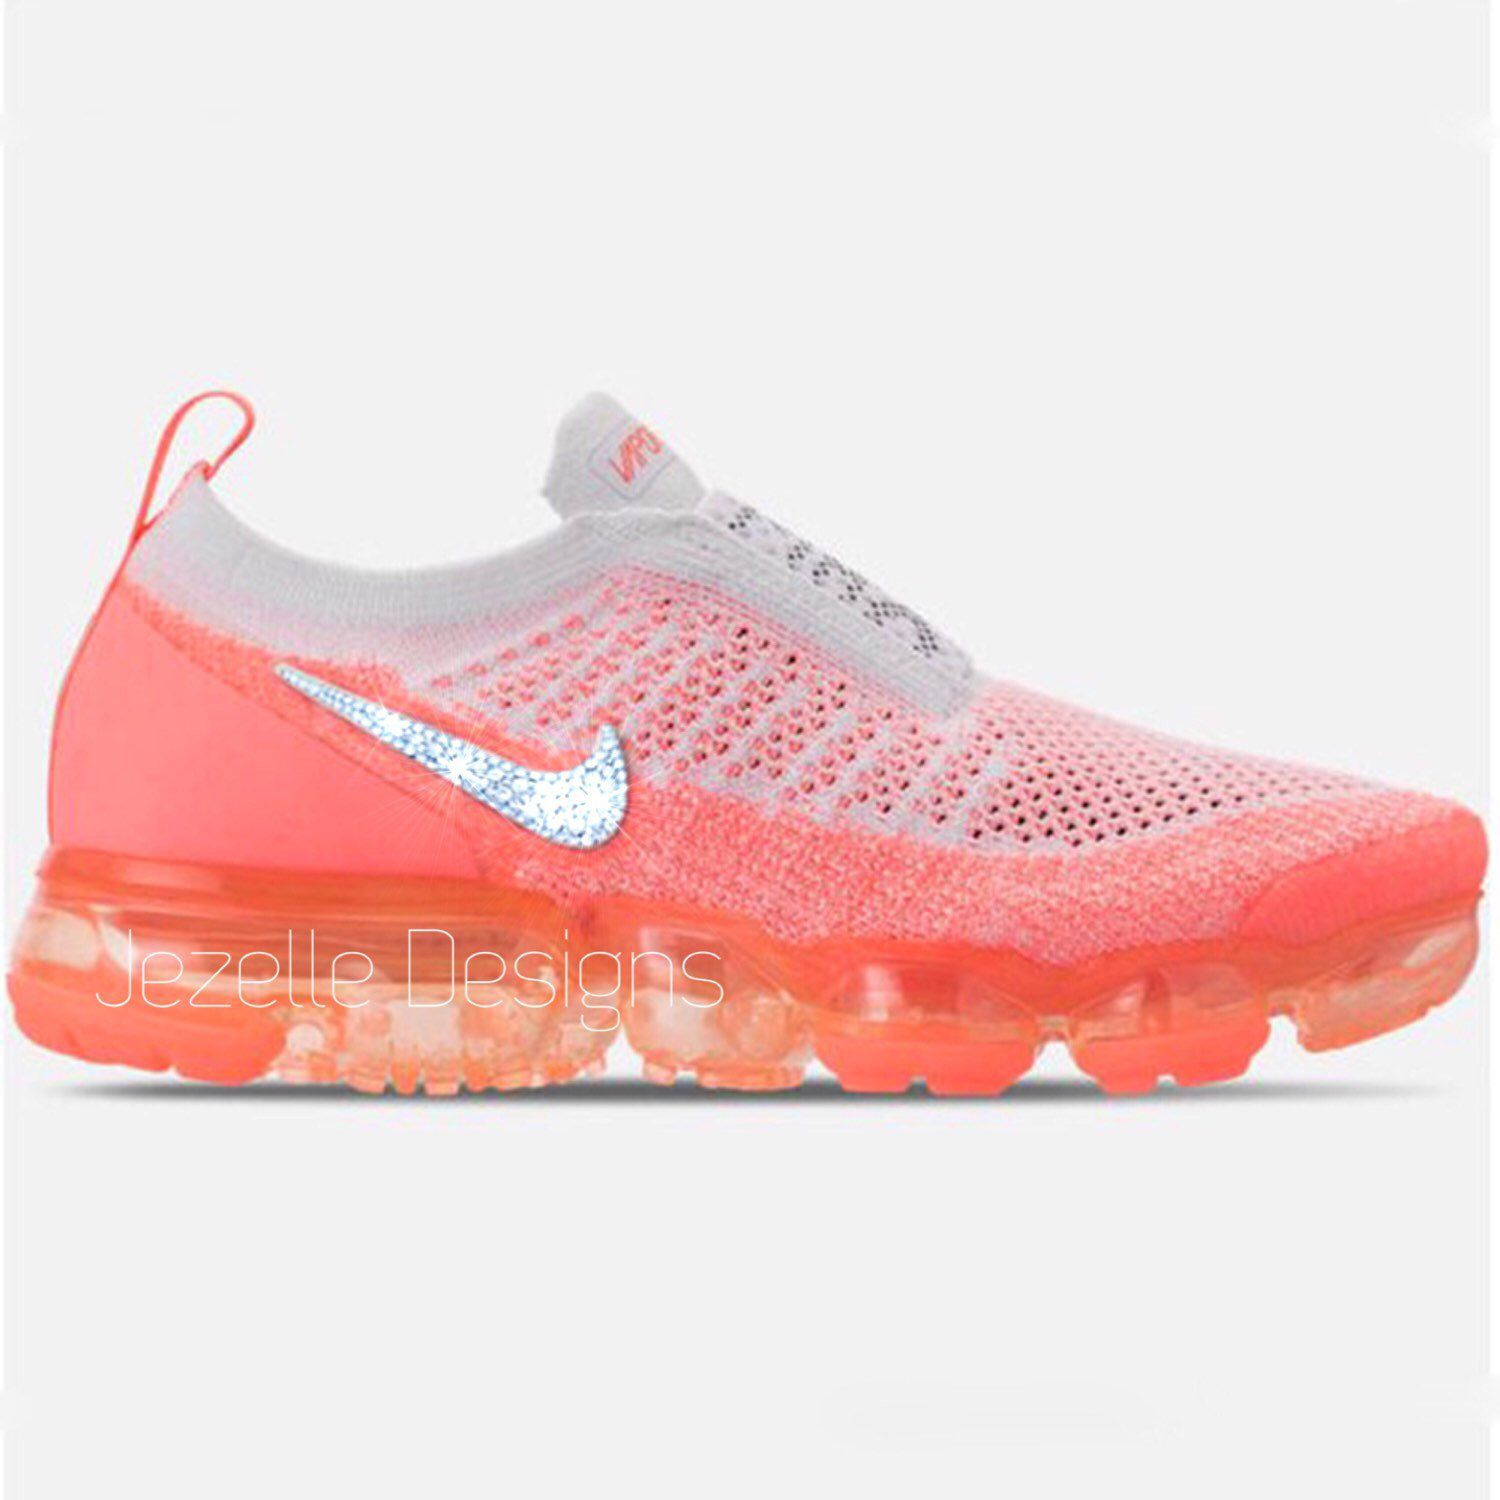 new style 349cf 3d096 Swarovski Nike Air VaporMax Flyknit MOC 2 Running Shoes Custom Hand Jeweled  w  Swarovski Crystals - Bling Nike Shoes - Glitter Kicks Nike in 2019    Sport ...